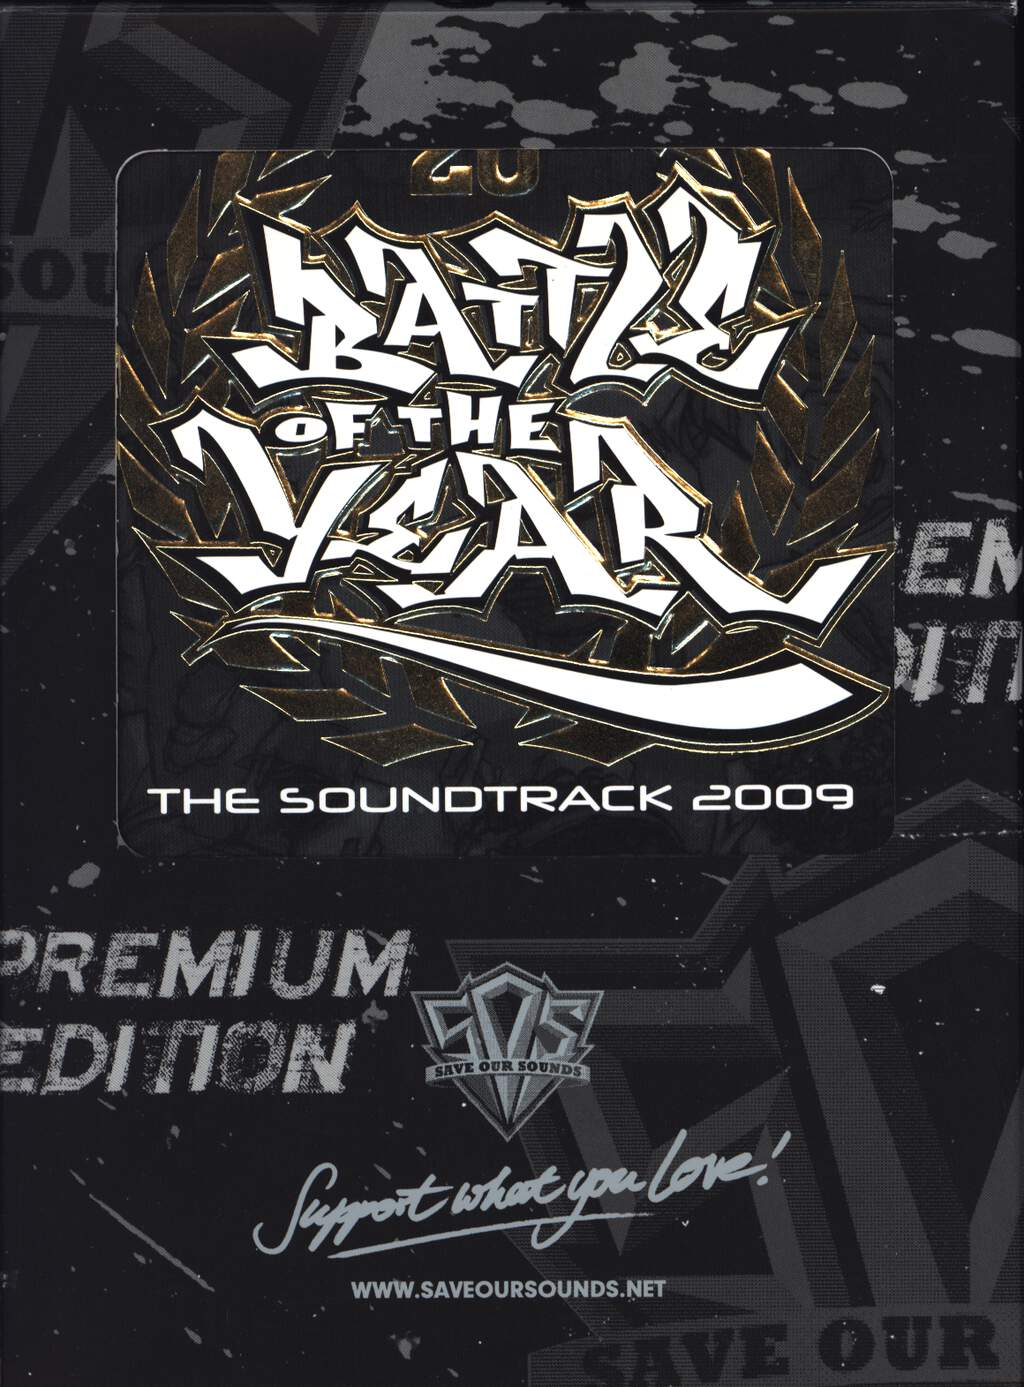 Various: International Battle Of The Year 2009 The Soundtrack - Premium Edition, CD